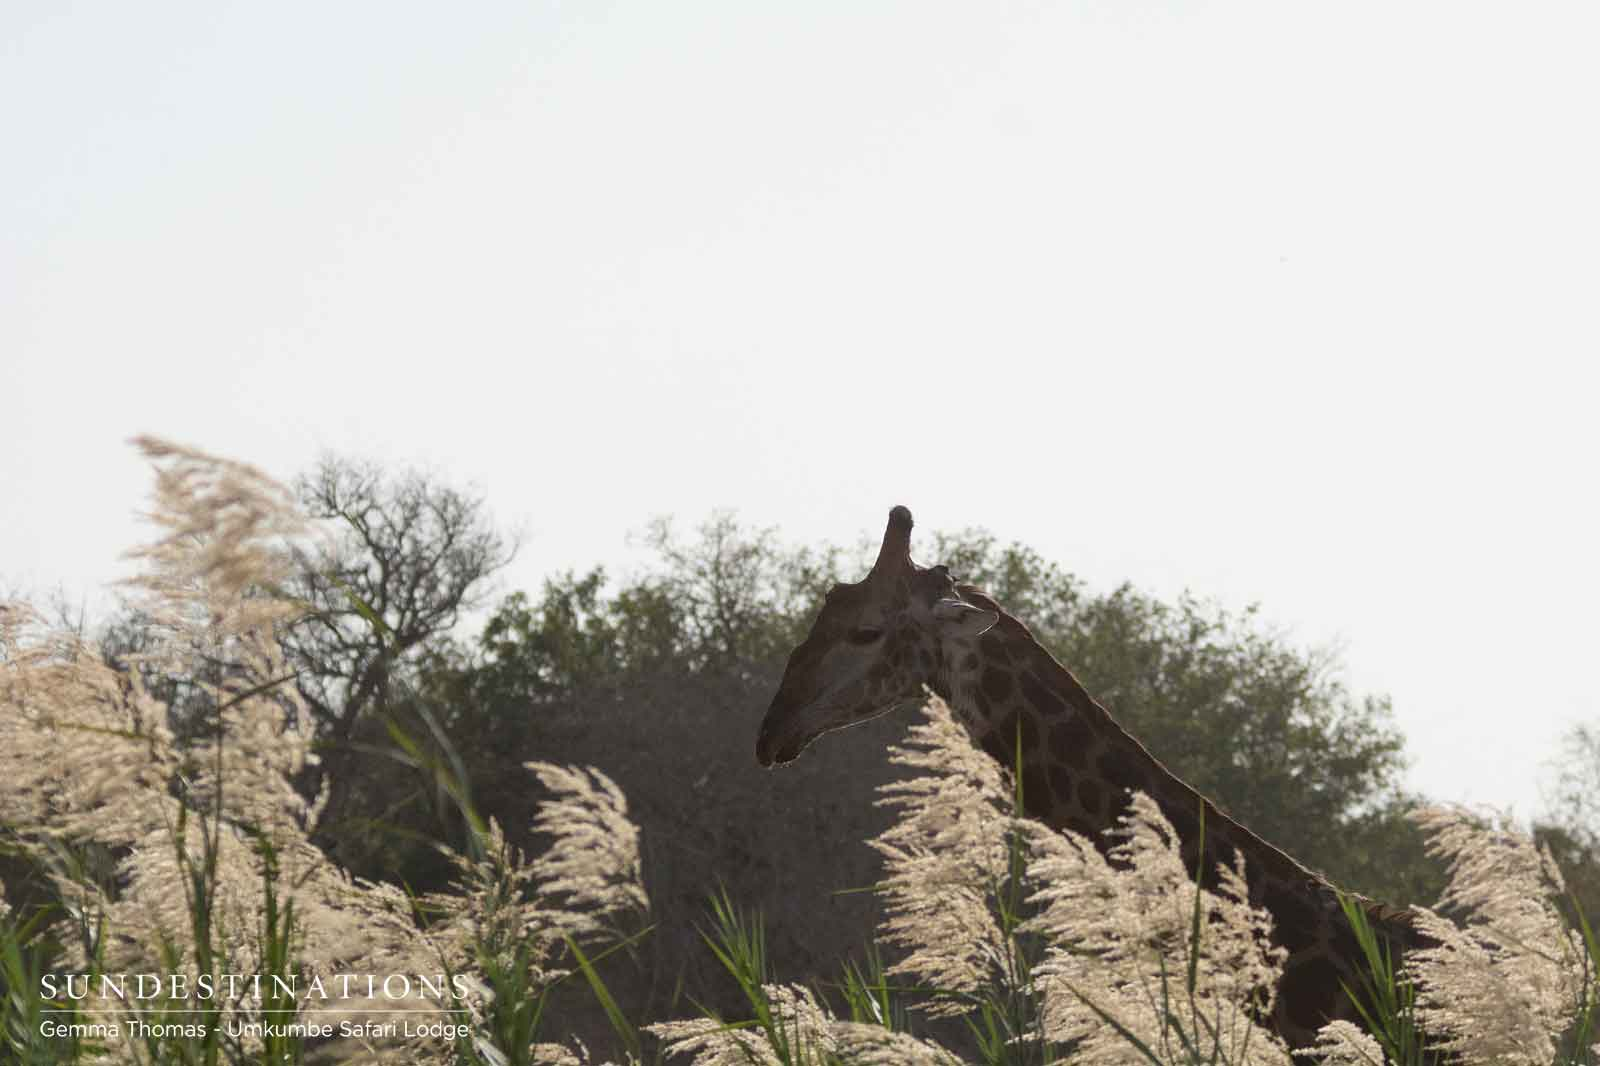 Giraffe at Umkumbe Safari Lodge